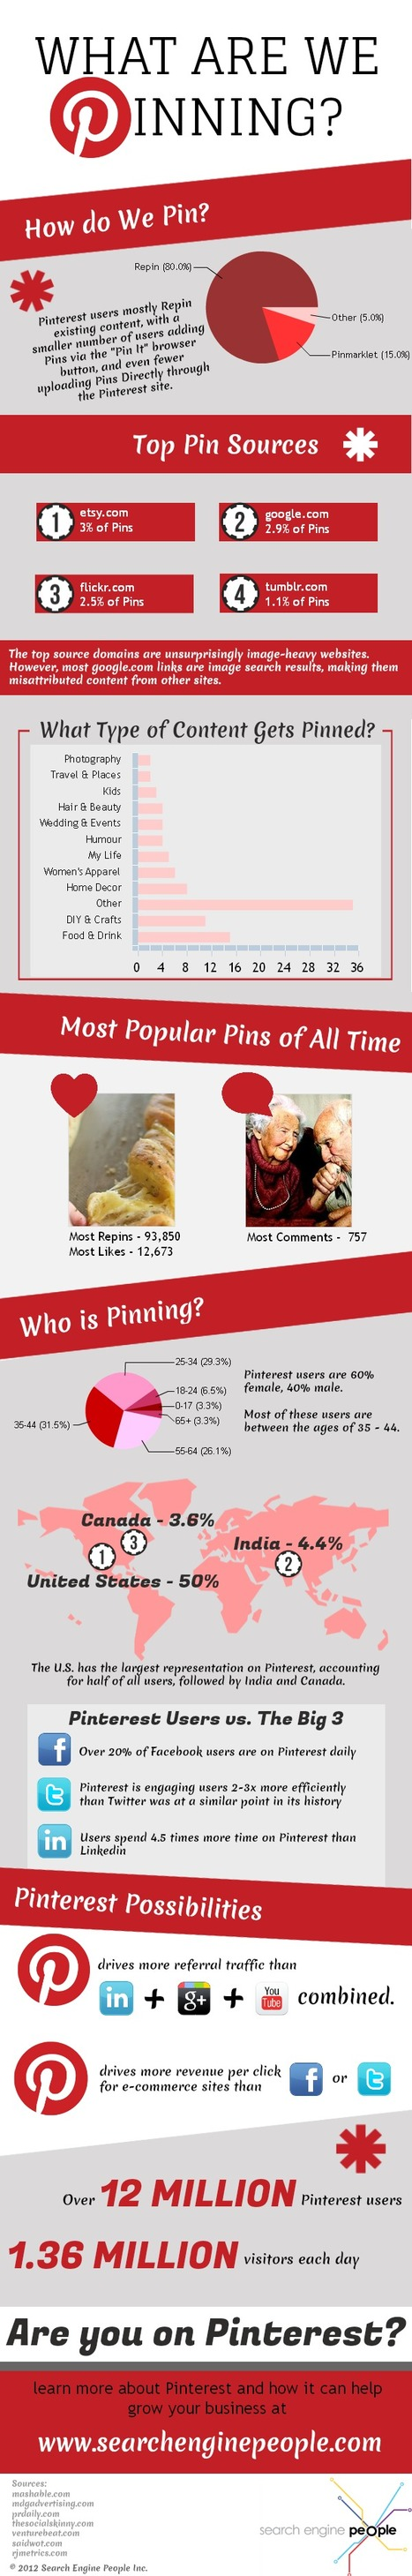 What Are We Pinning? [Infographic] | Technographics | Scoop.it